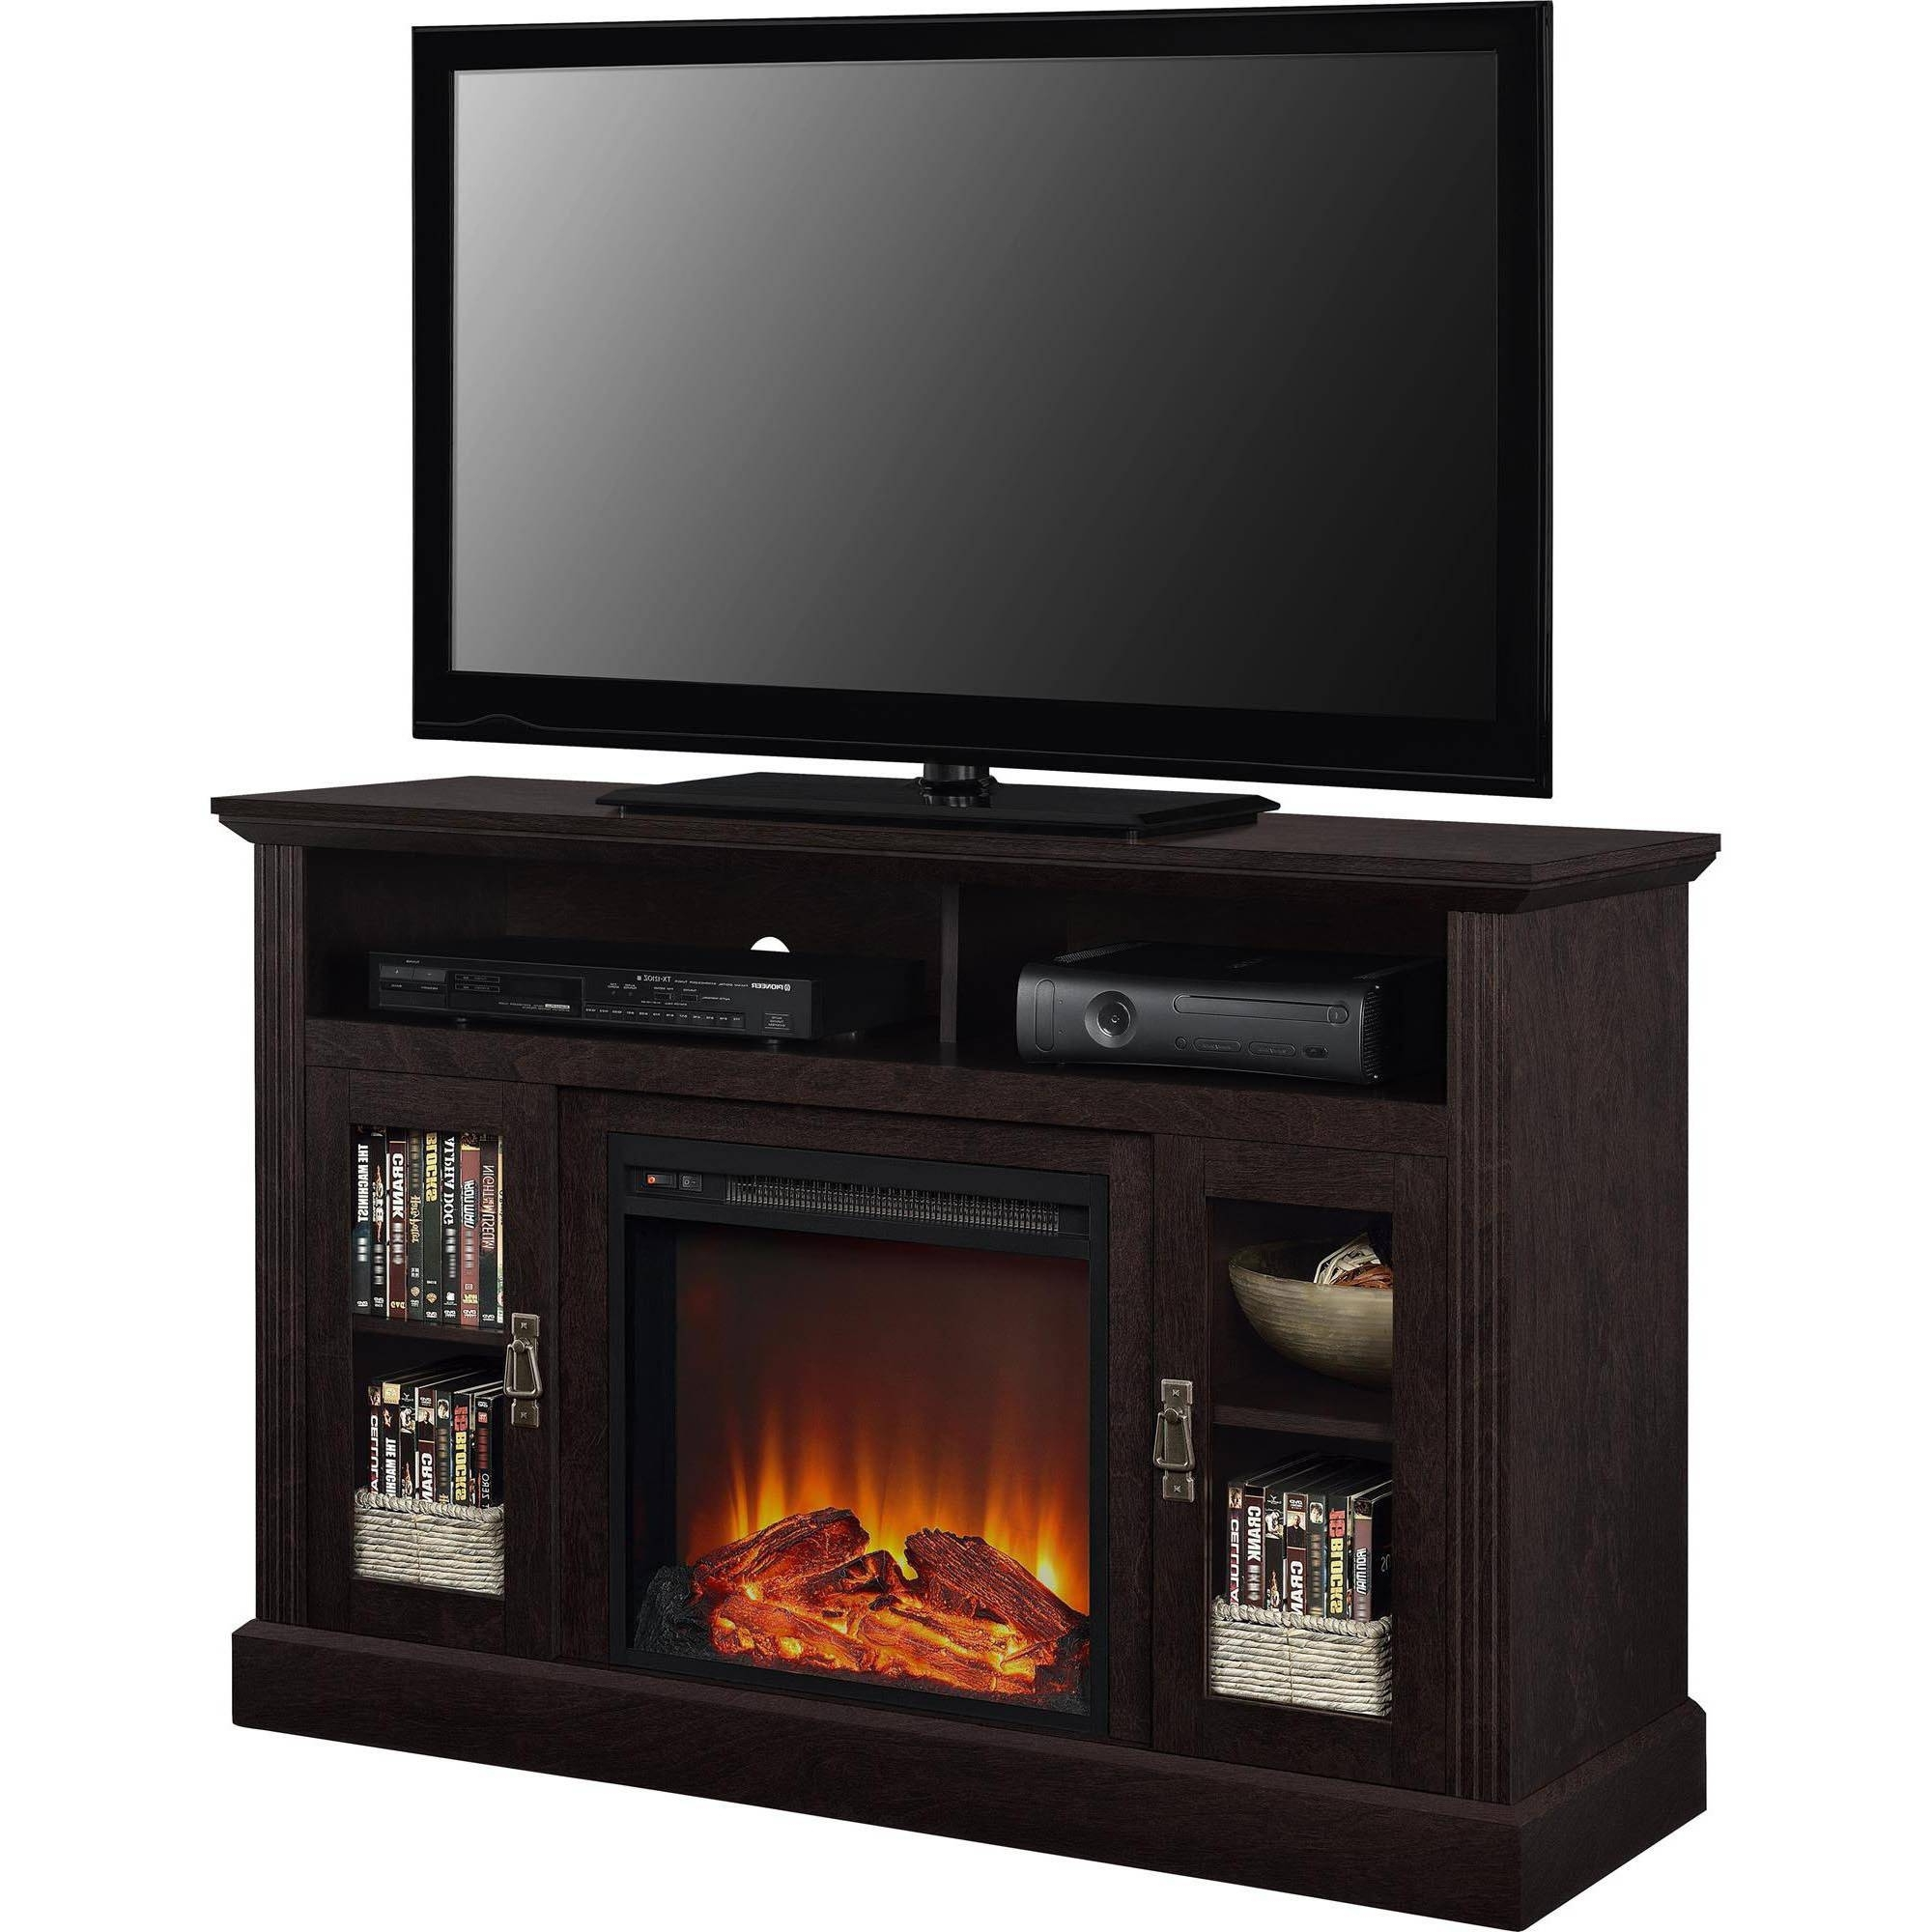 Tv Stand Bookcases Combo Intended For 2018 Fireplace Tv Stands – Walmart (View 6 of 15)